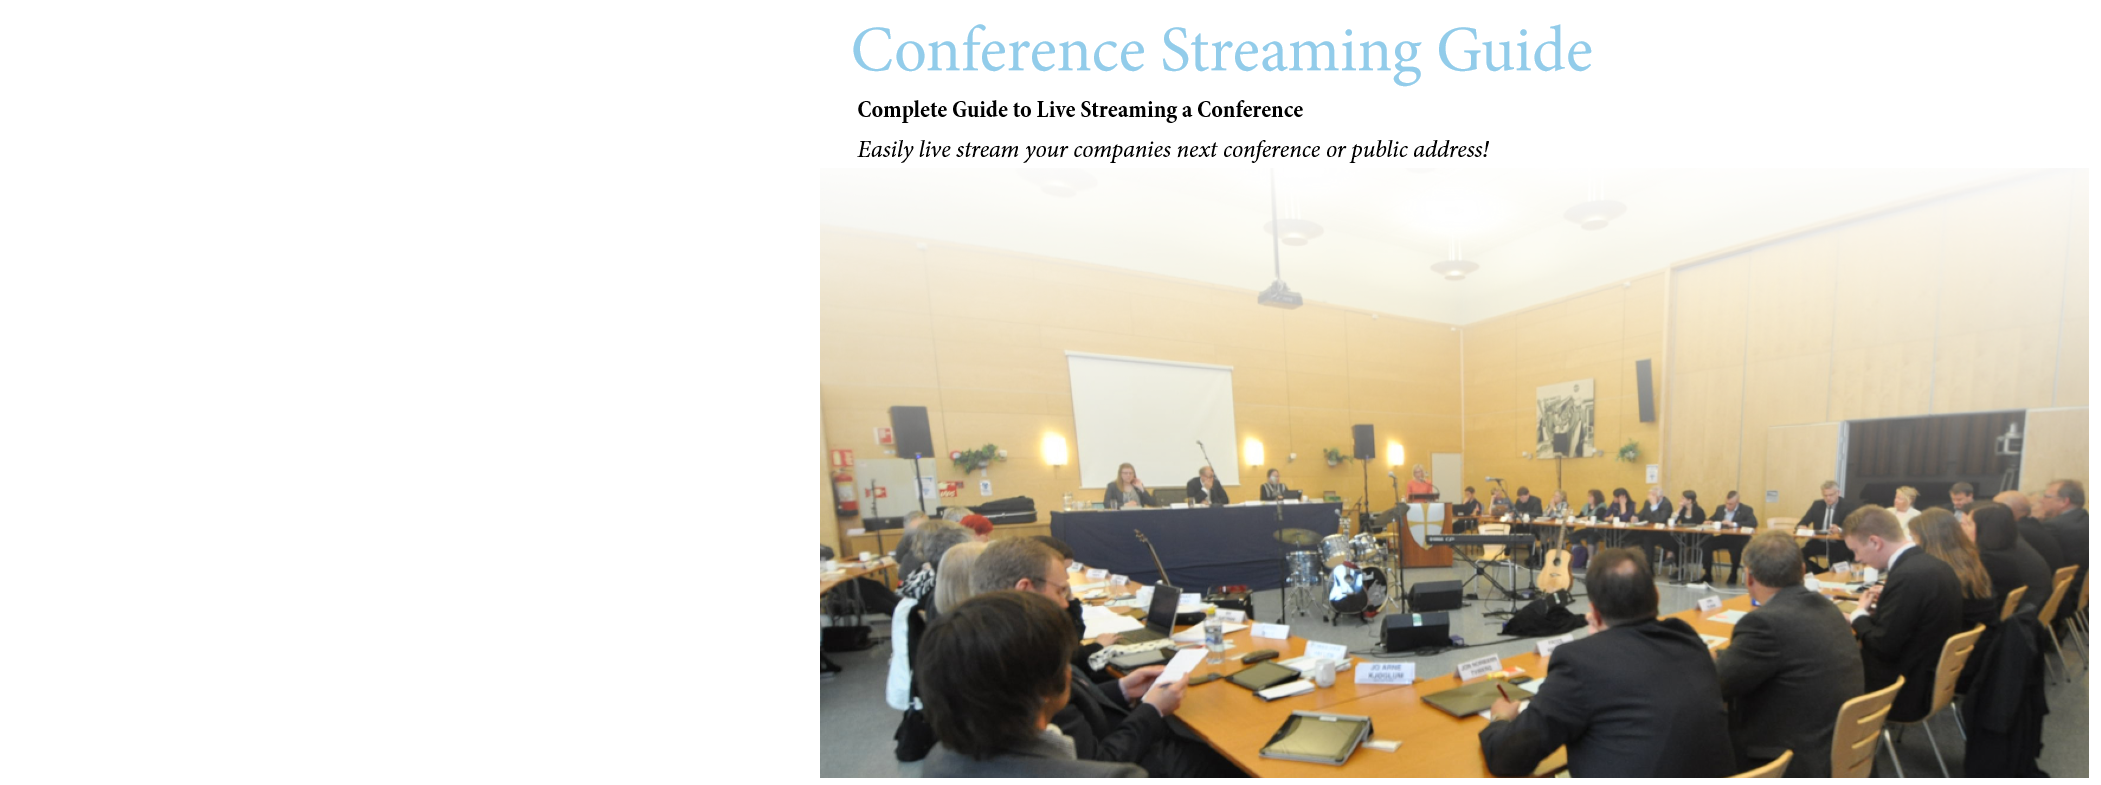 conference_streaming_banner-2.png